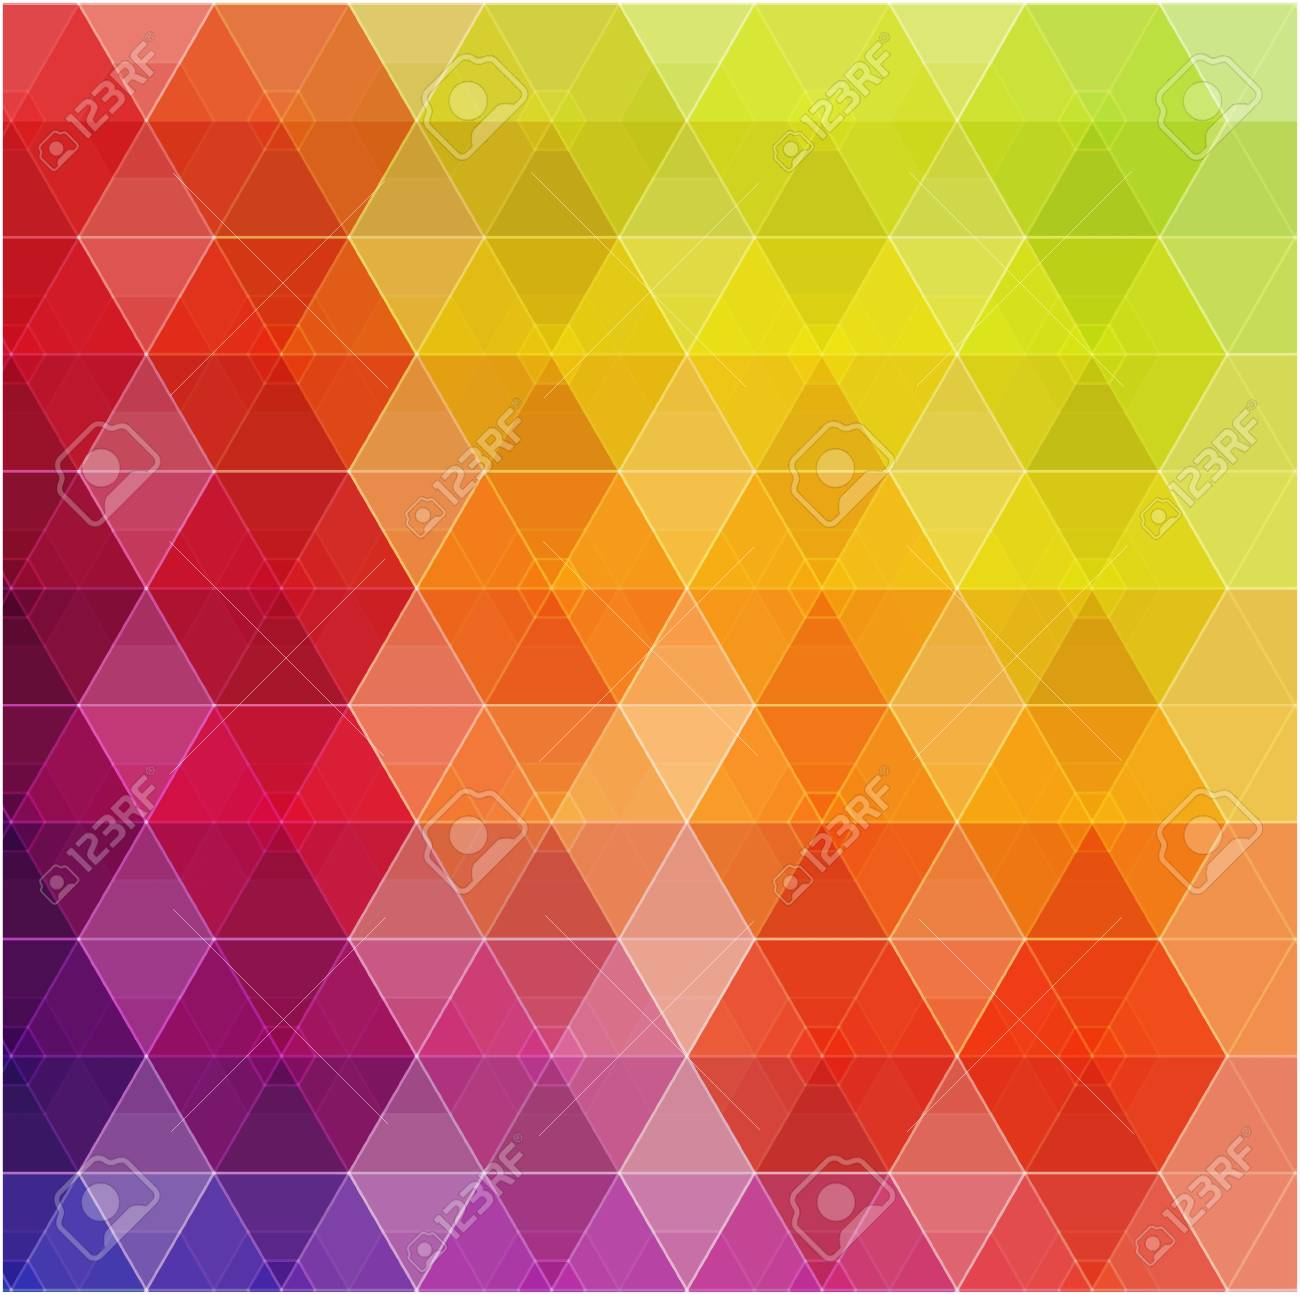 Retro pattern of geometric shapes  Colorful mosaic banner Stock Vector - 21222359